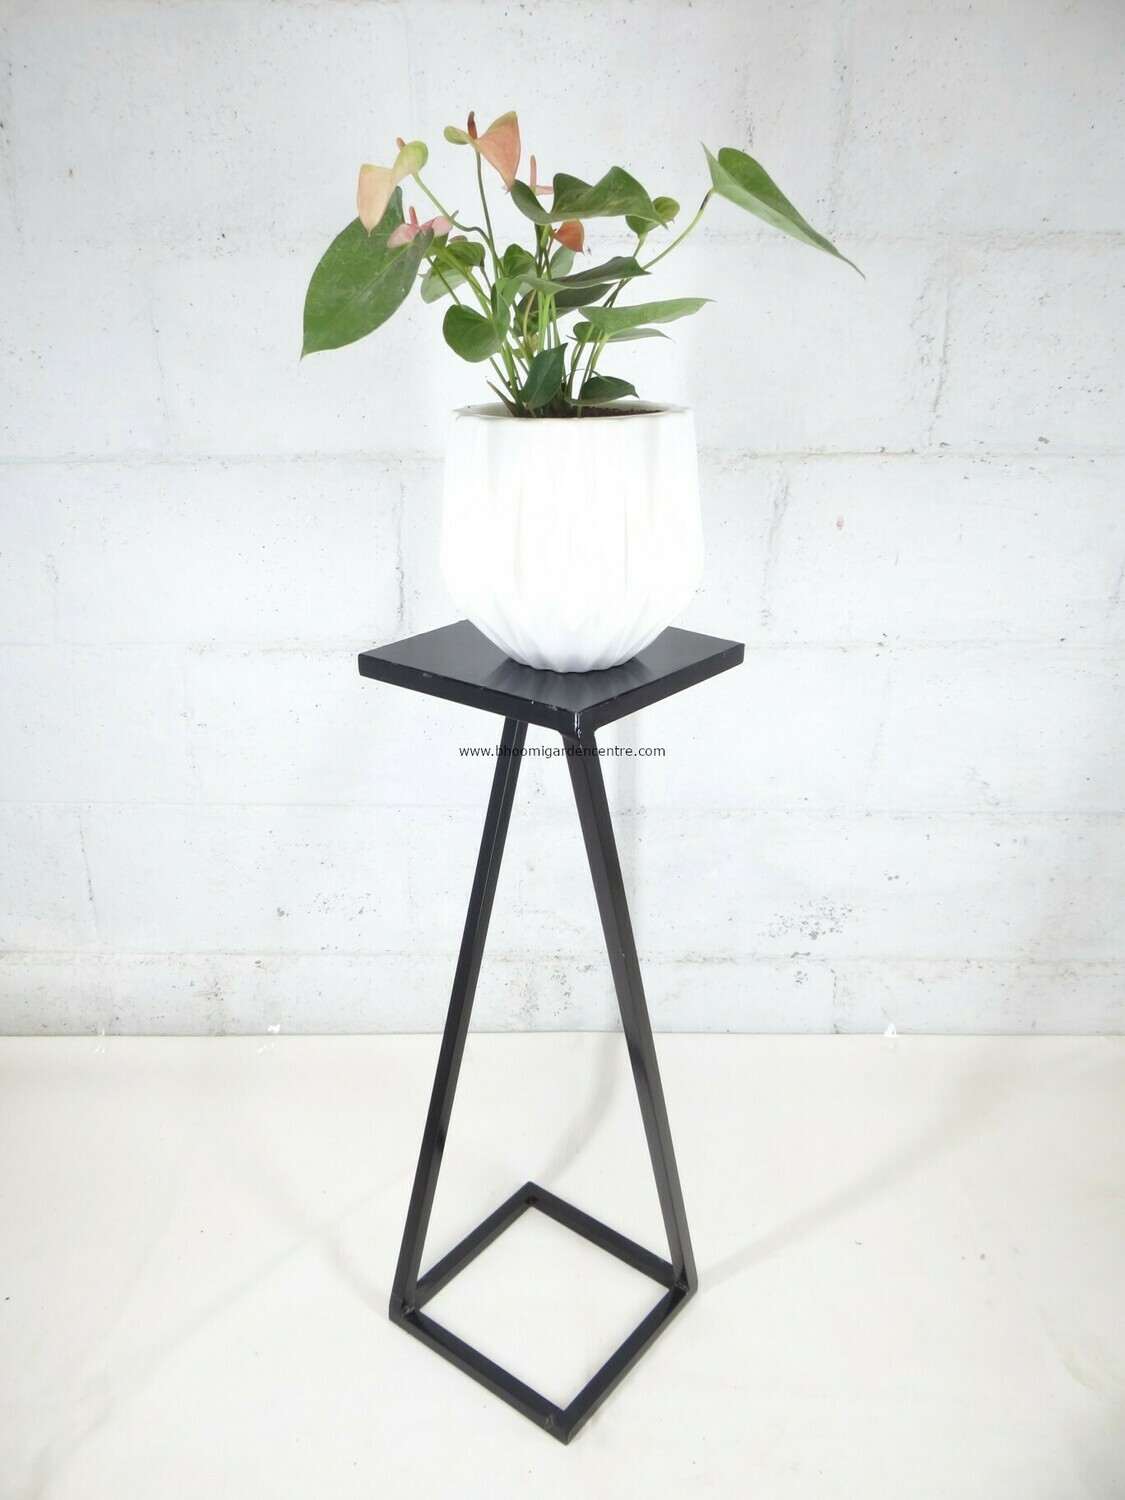 UE 114 - Cross leg shaped stand